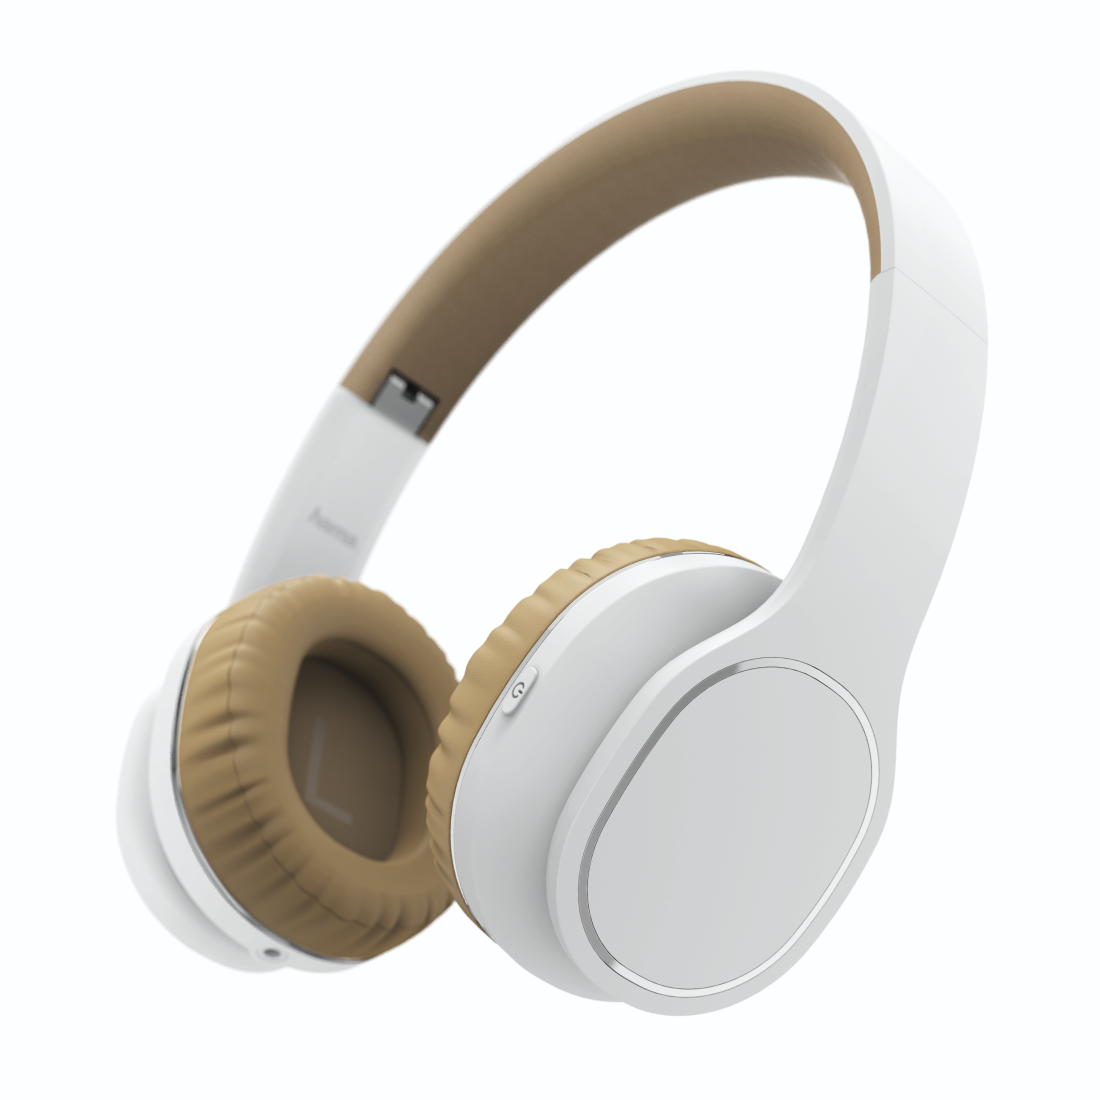 "abx High-Res Image - Hama, Casque Bluetooth® ""Touch"", supra-aur., micro., comm. tact., blc/beige"